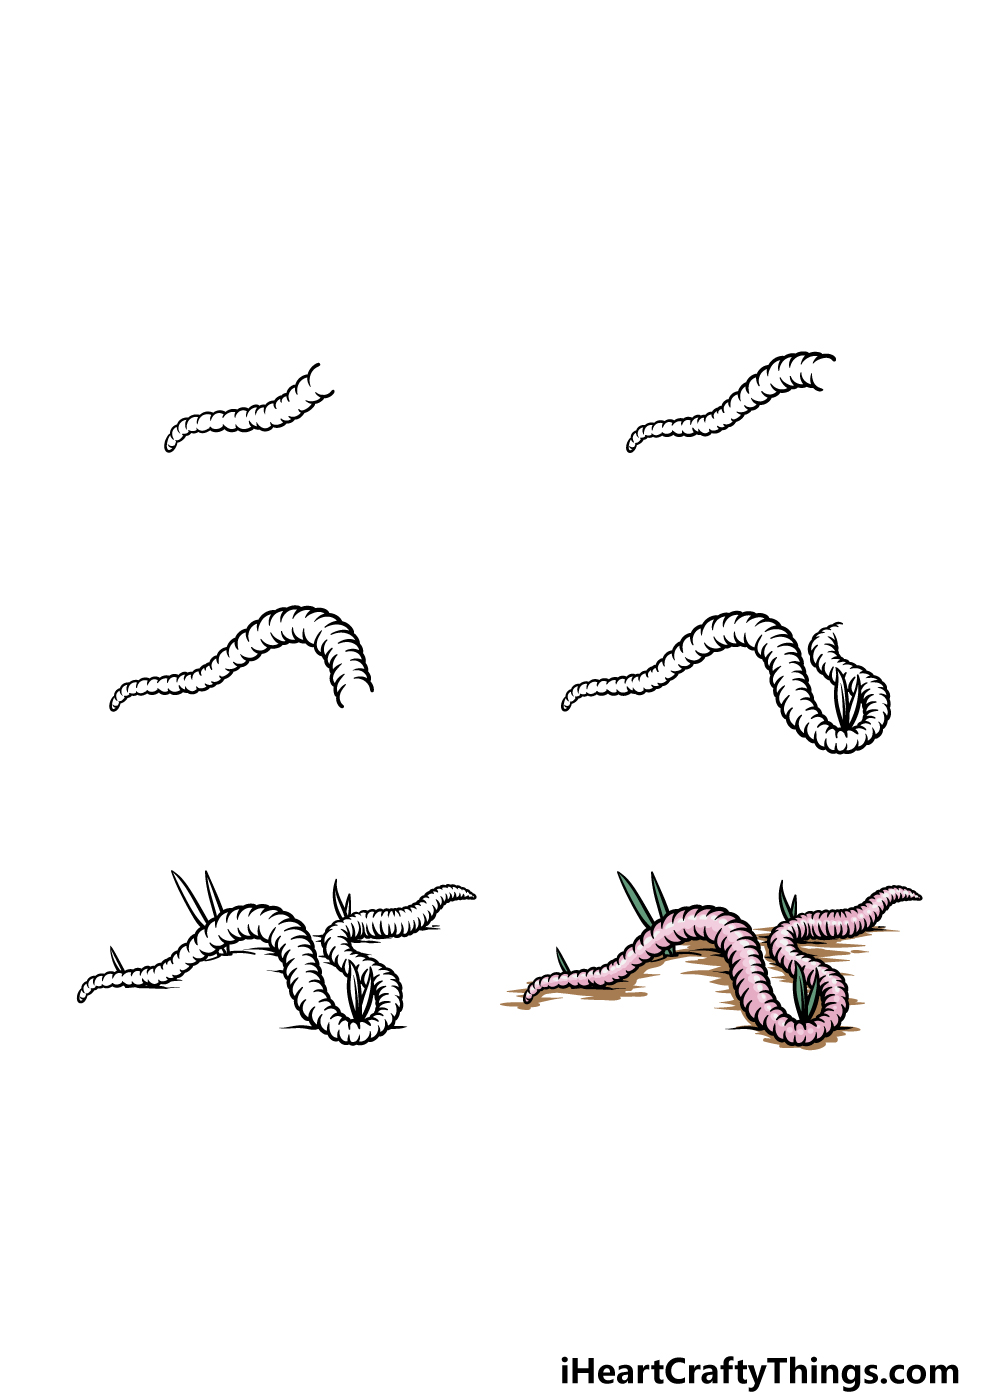 how to draw a worm in 6 steps